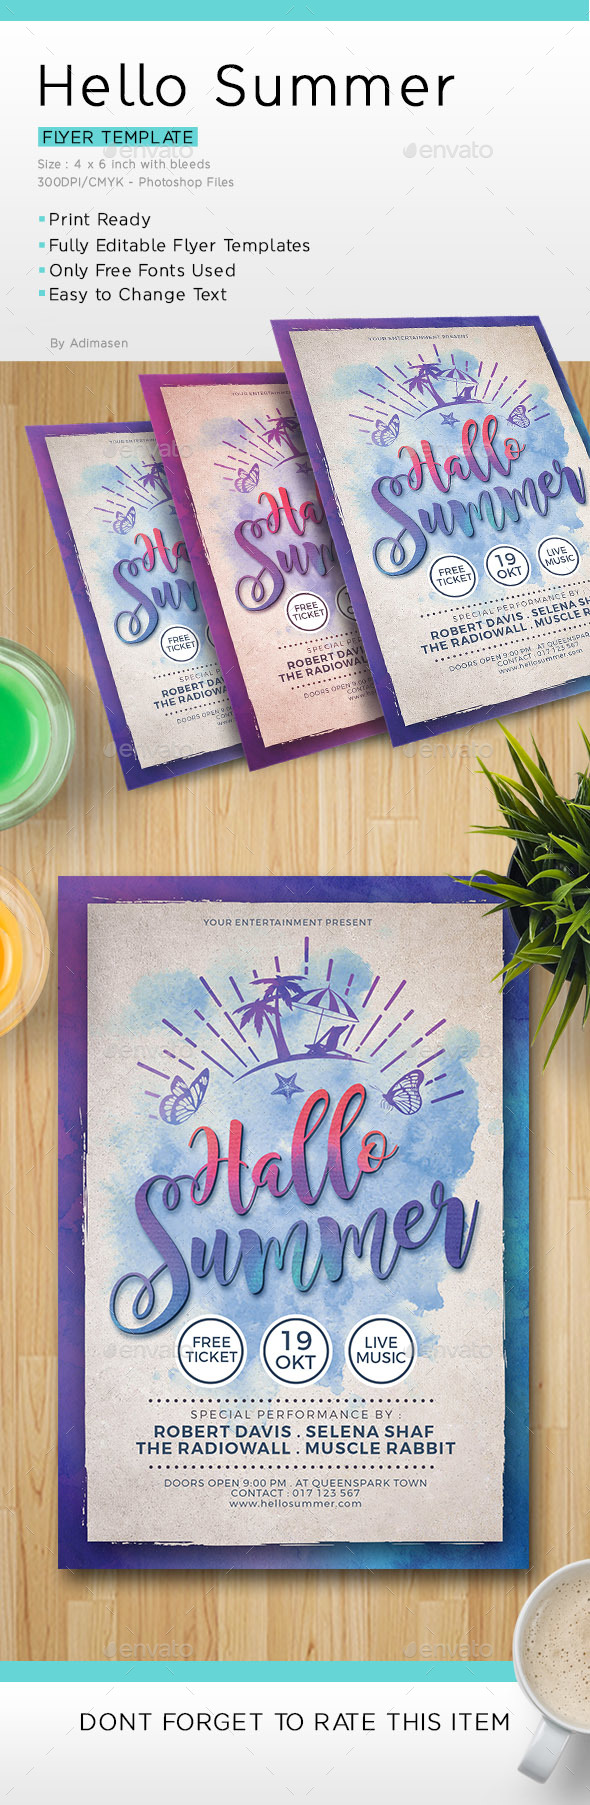 Hallo Summer Flyer Template - Events Flyers